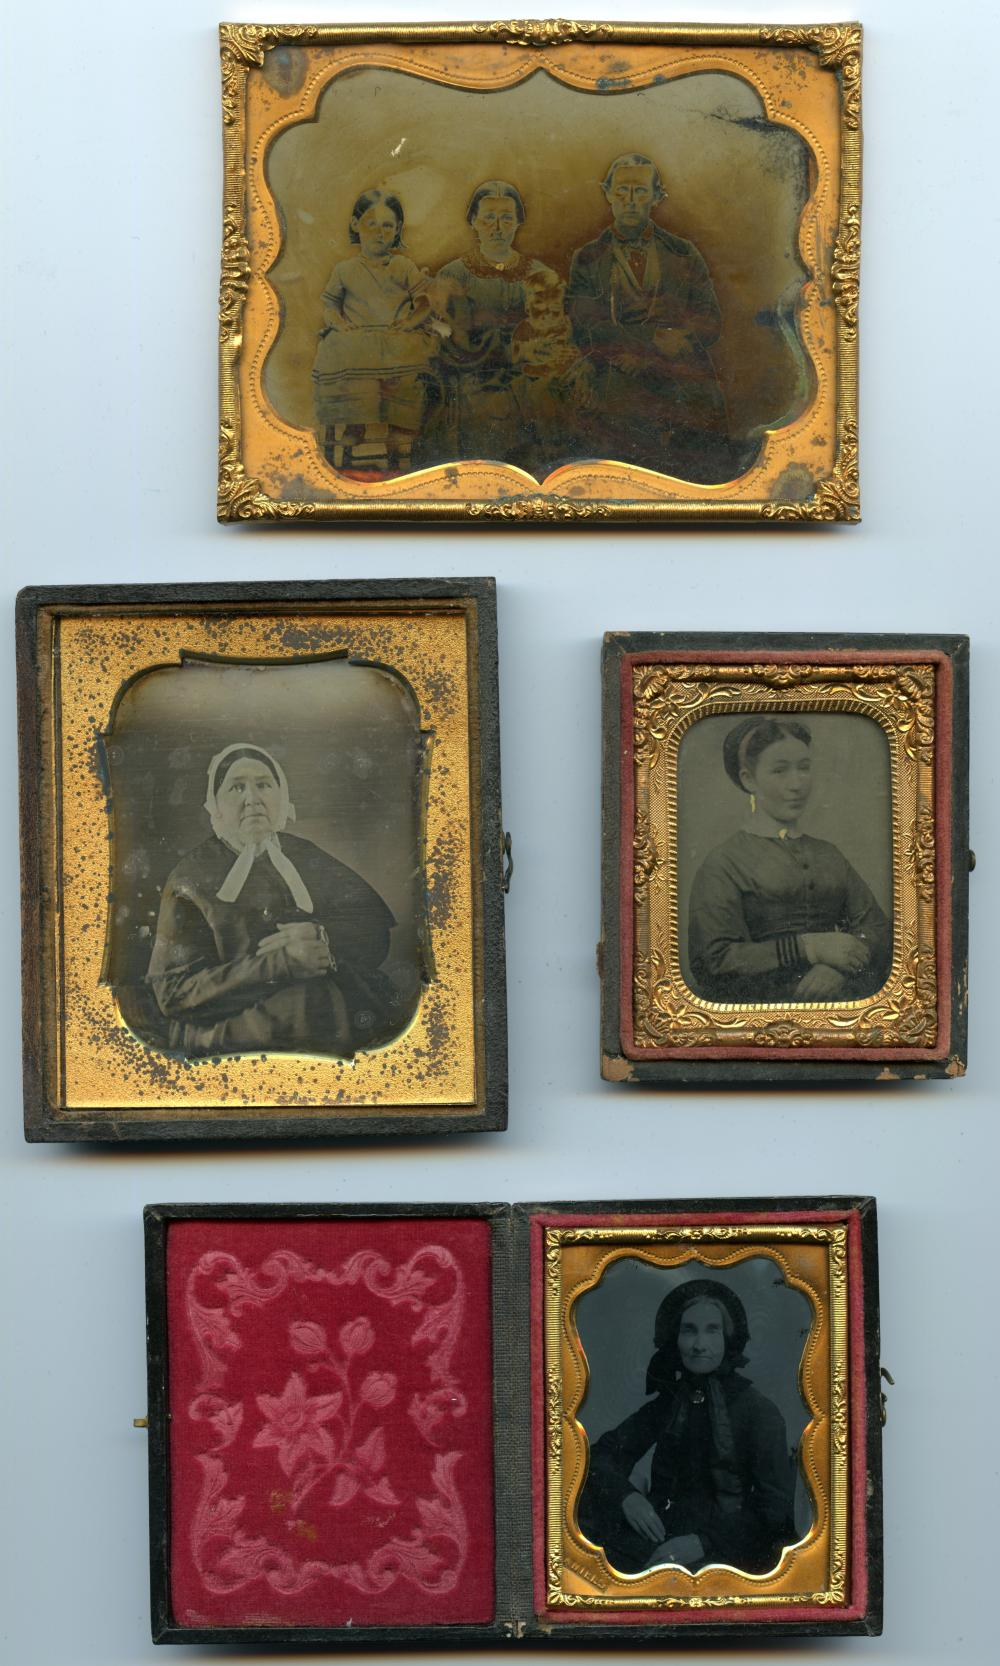 Group of Four Tintype/Ambrotype/Daguerreotype Portraits, One Named Artist